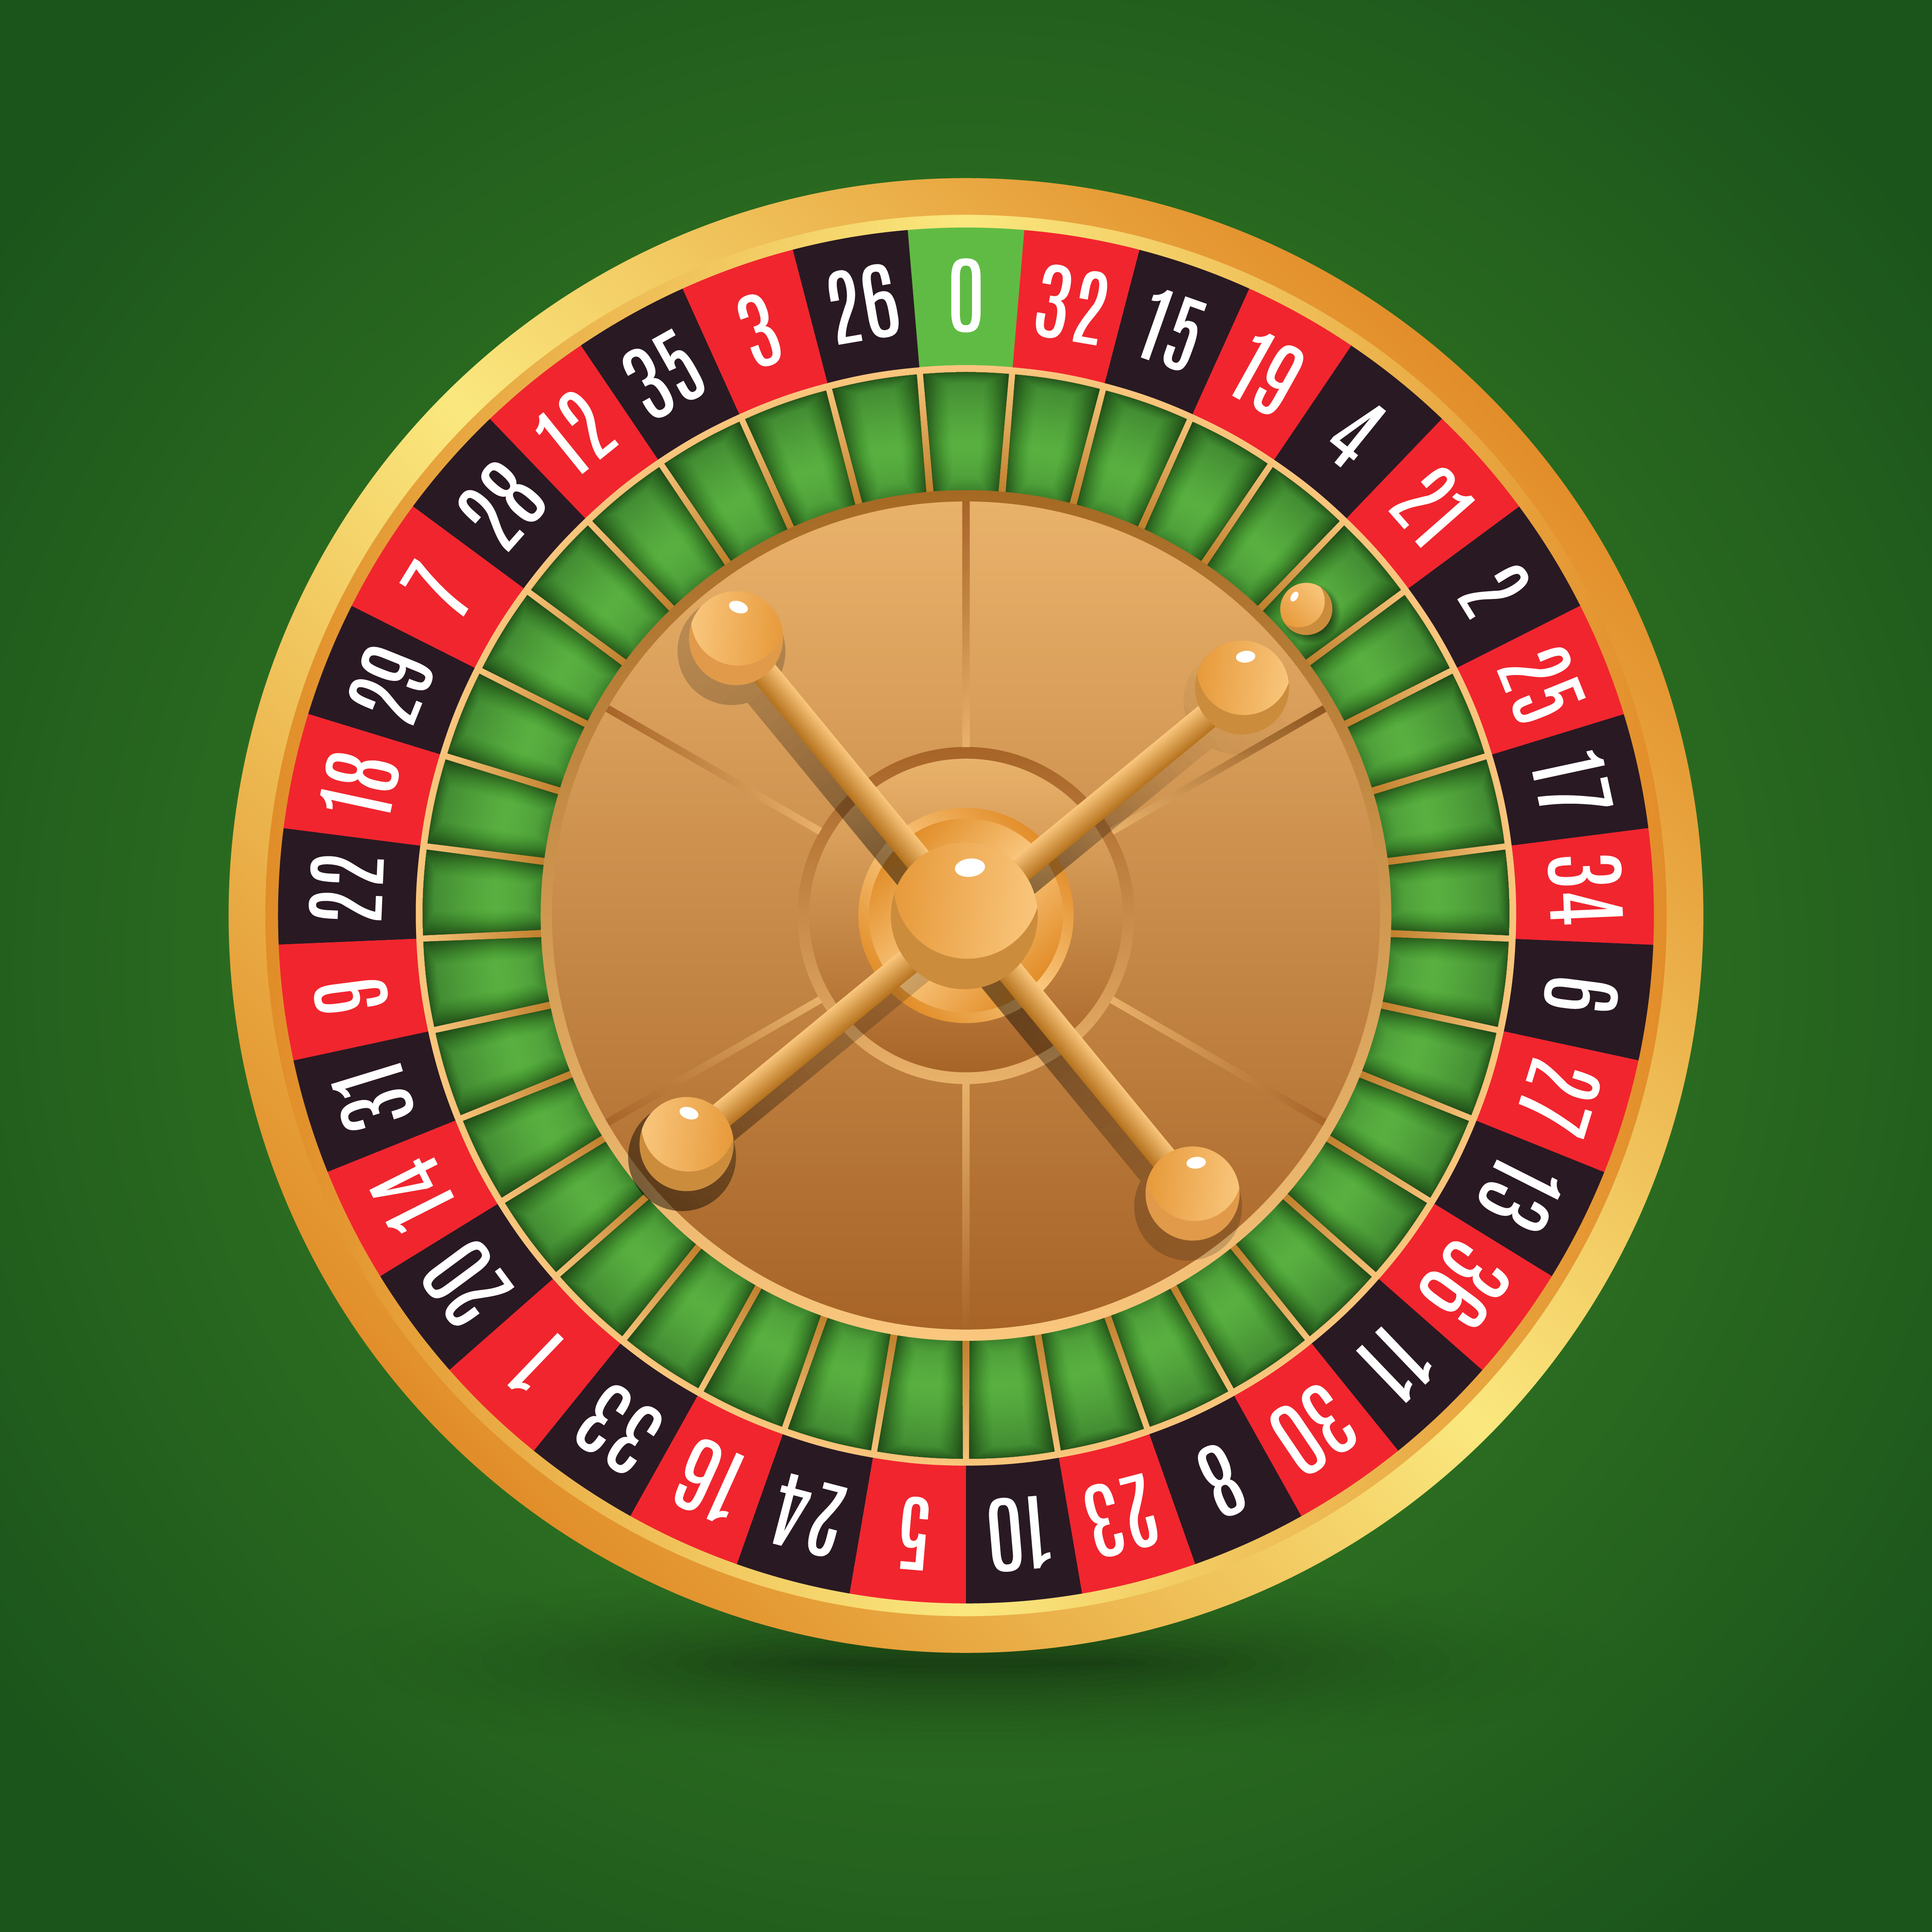 Cassino online free chinese roulette roleta - 121907